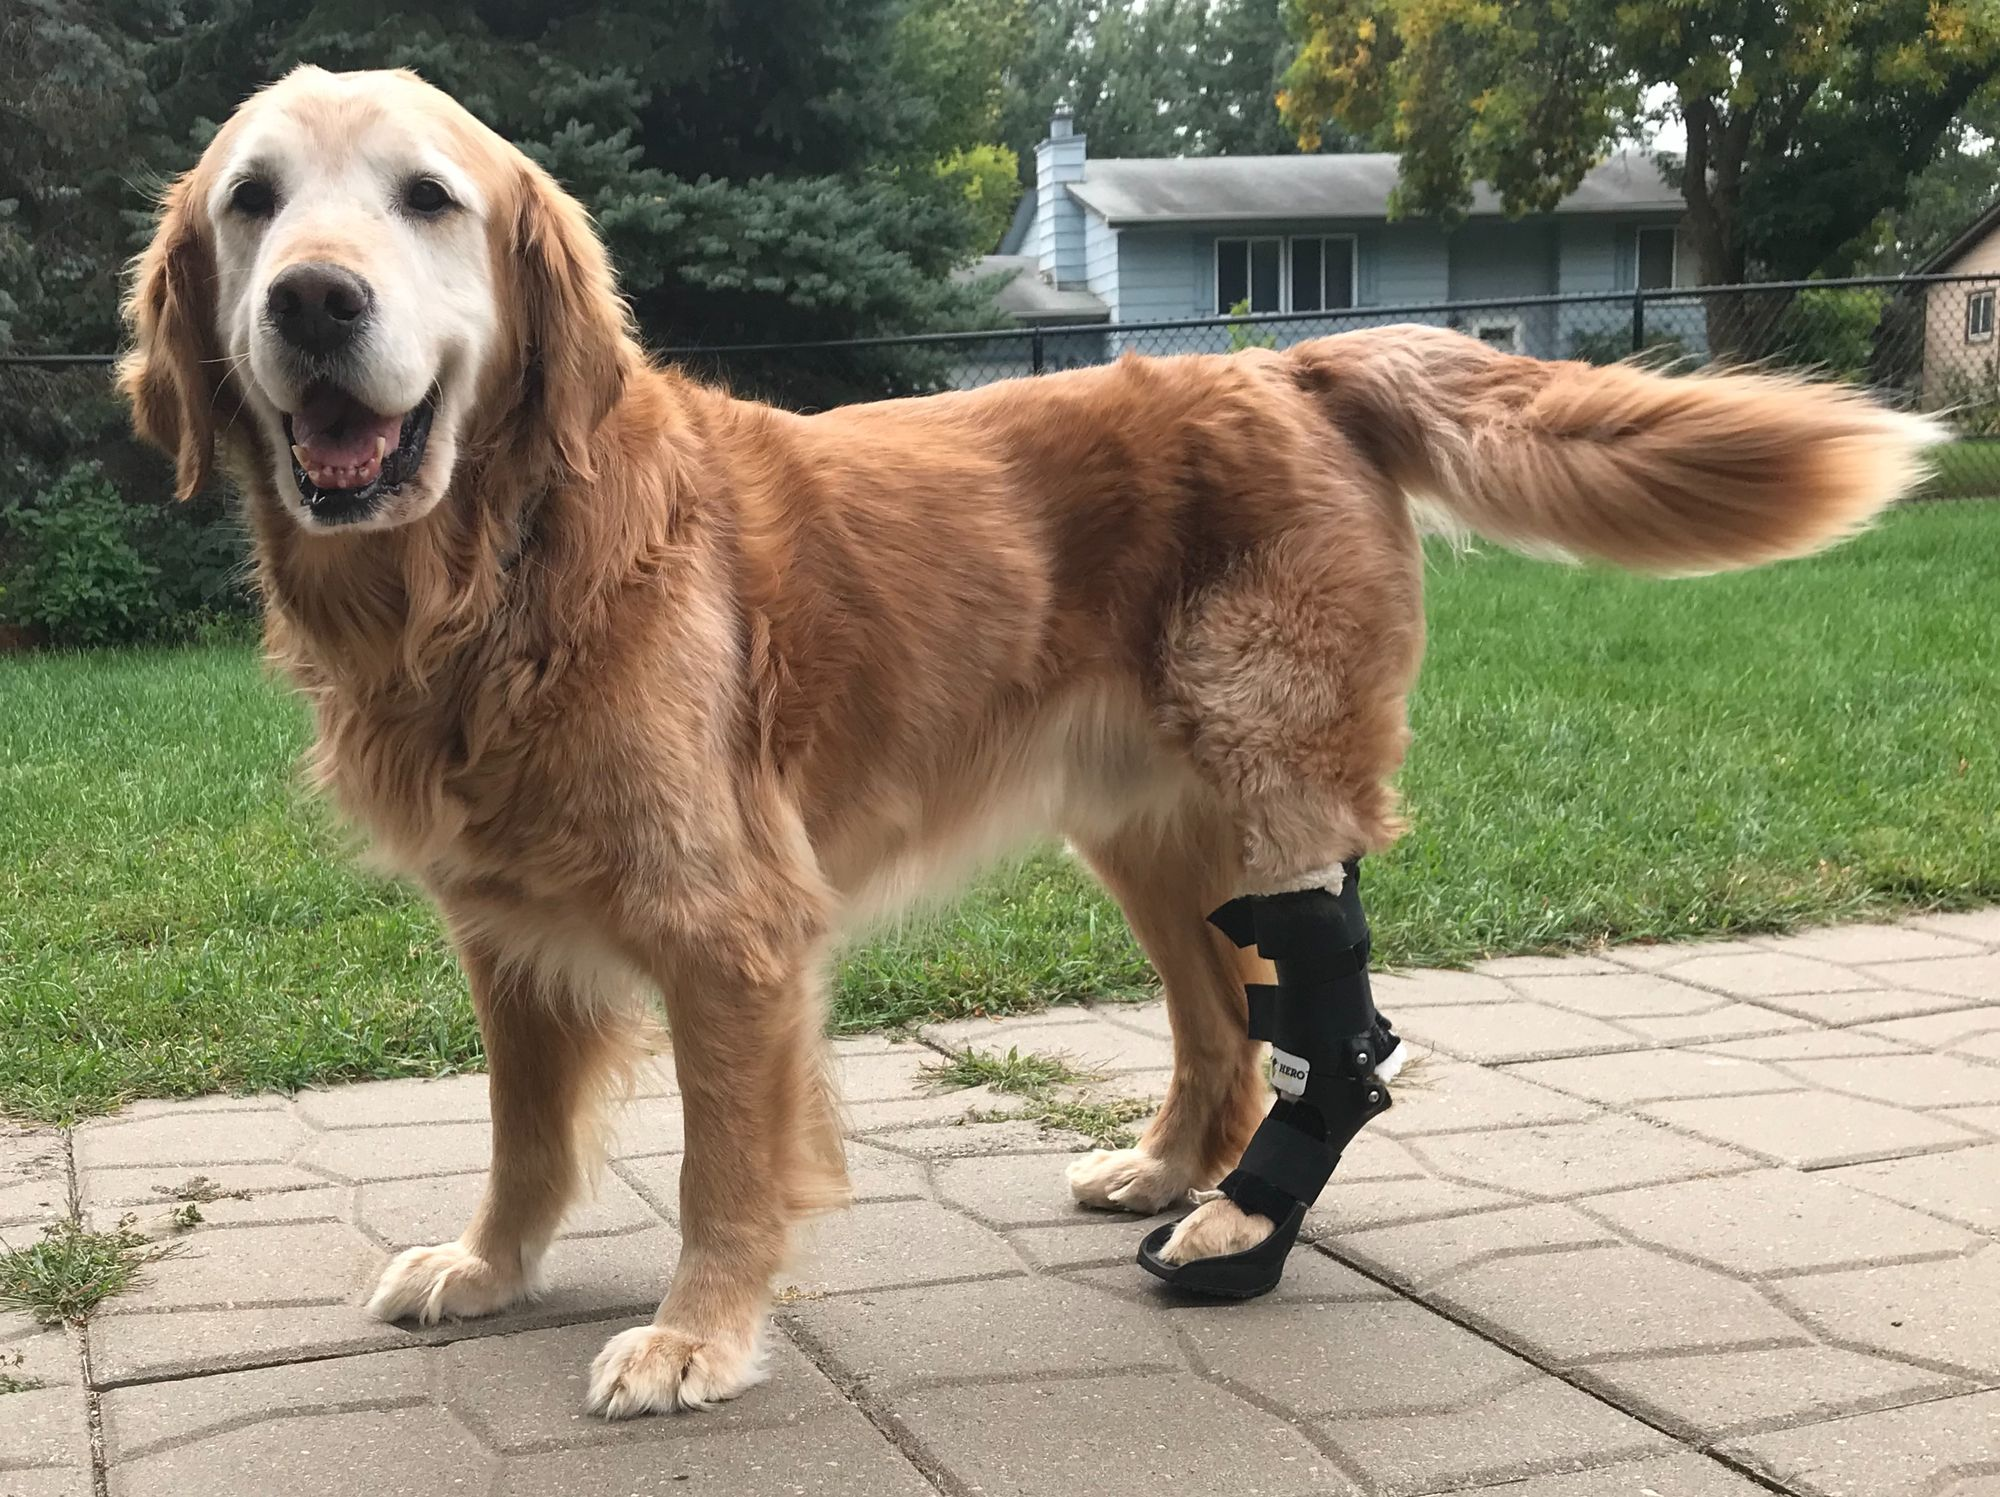 Dog with hock brace wagging his tail